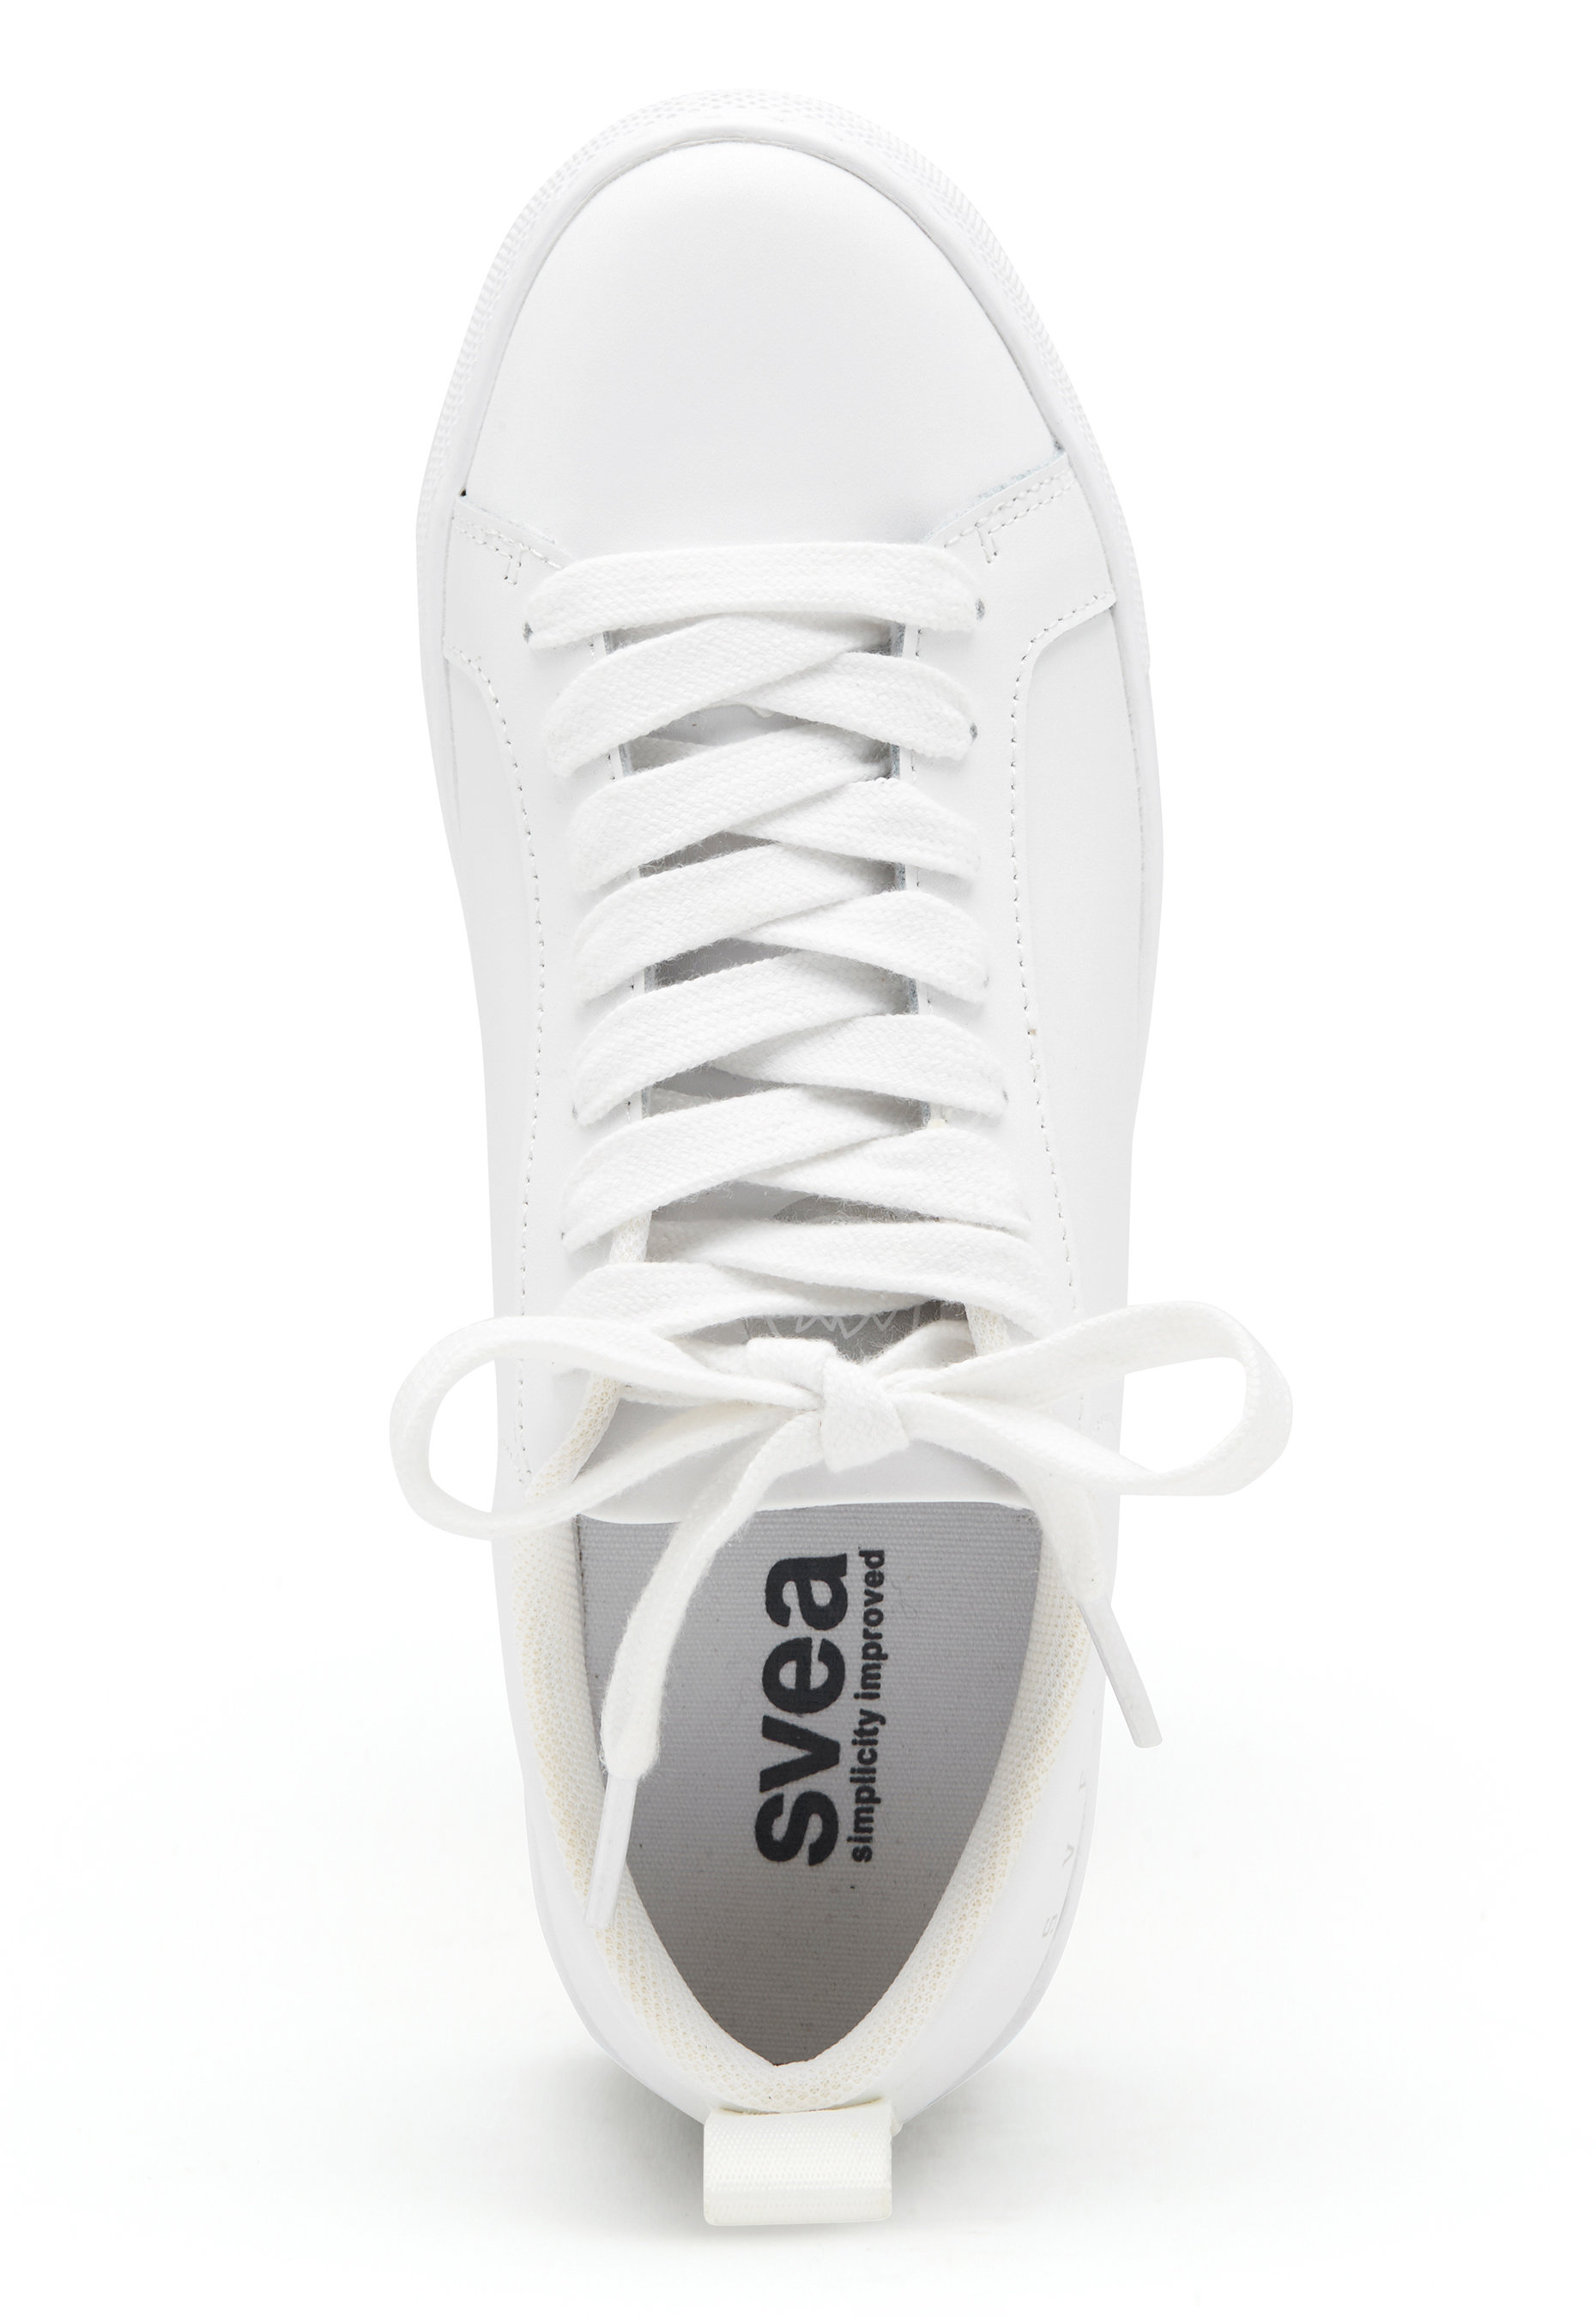 e332b0bd Svea Billie Leather Sneaker White - Bubbleroom